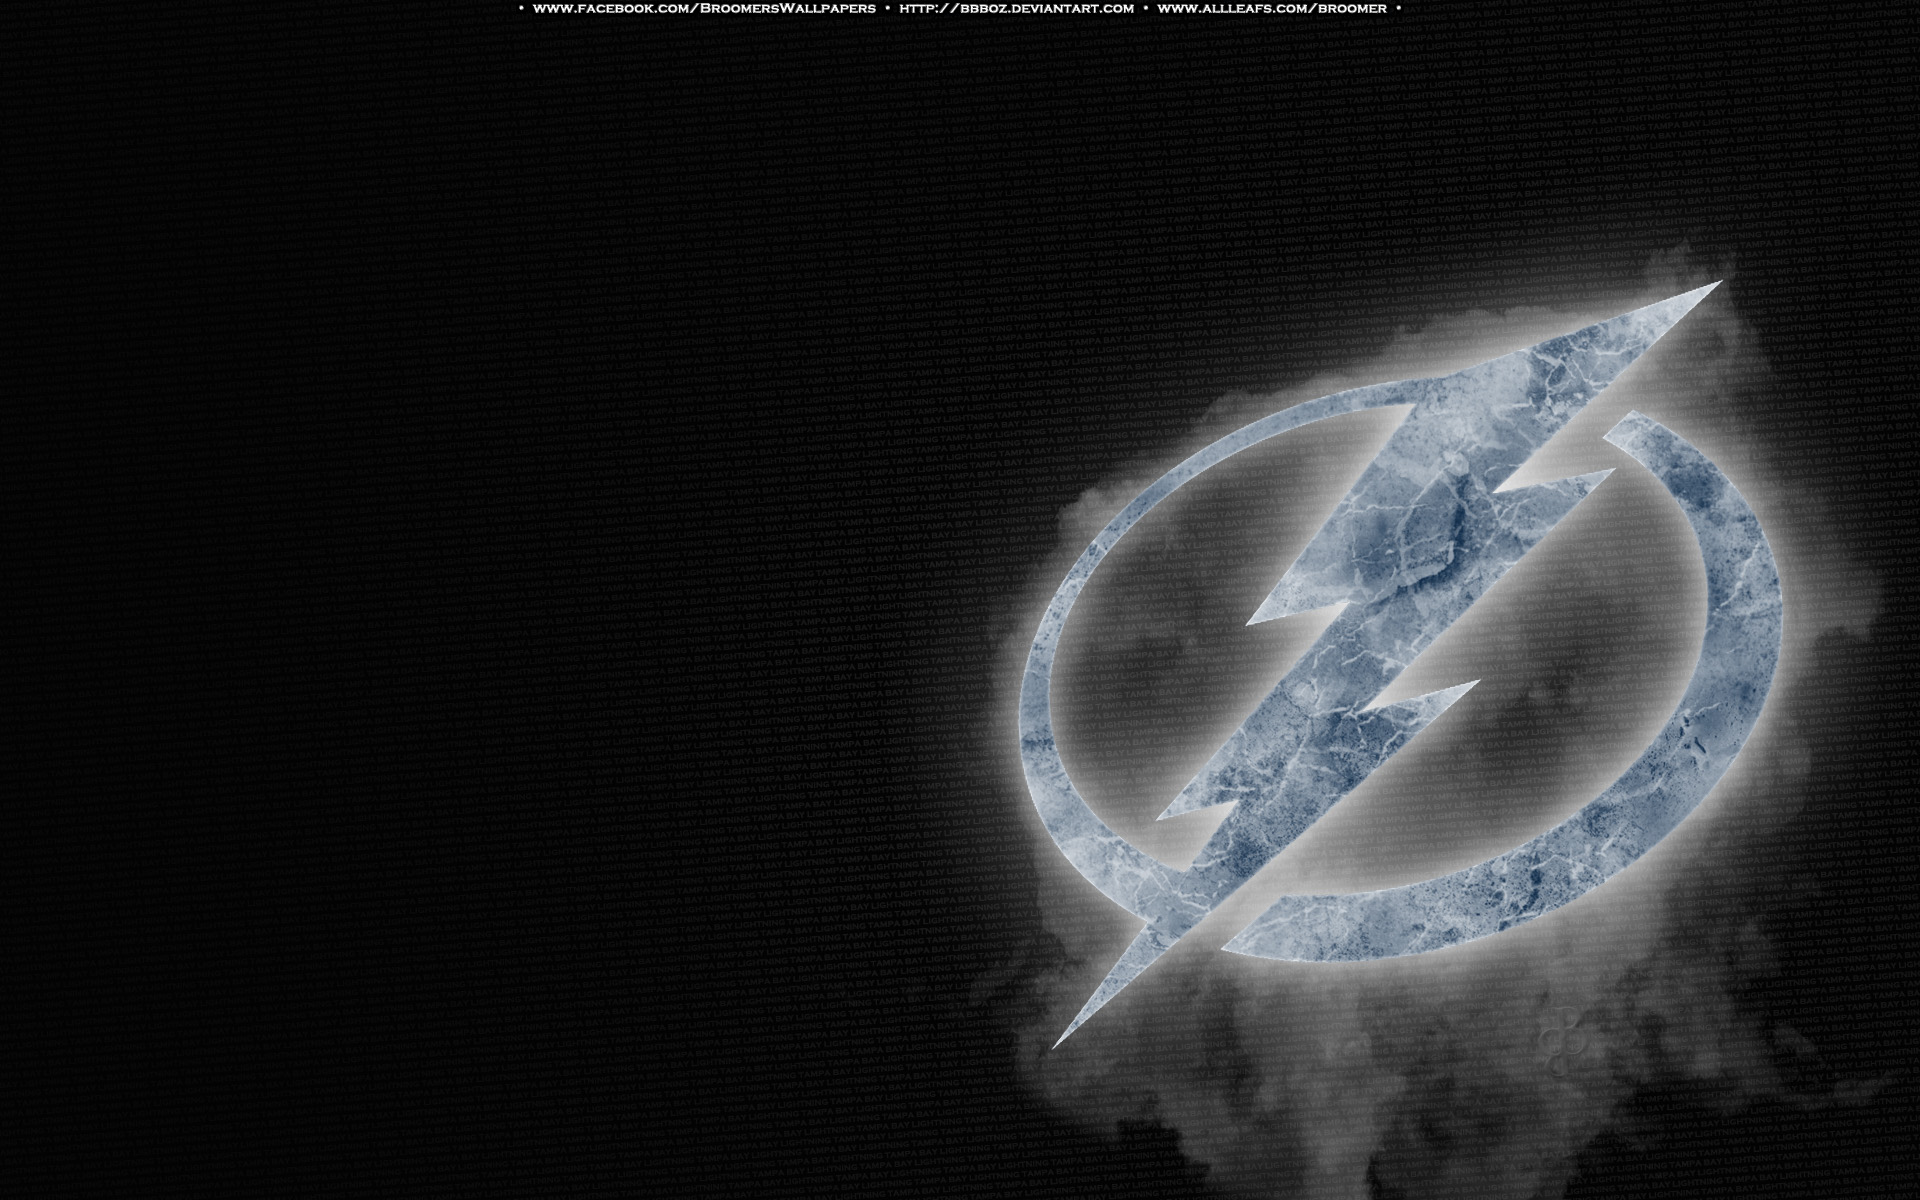 tampa bay lightning ice by bbboz fan art wallpaper other 2011 2015 1920x1200